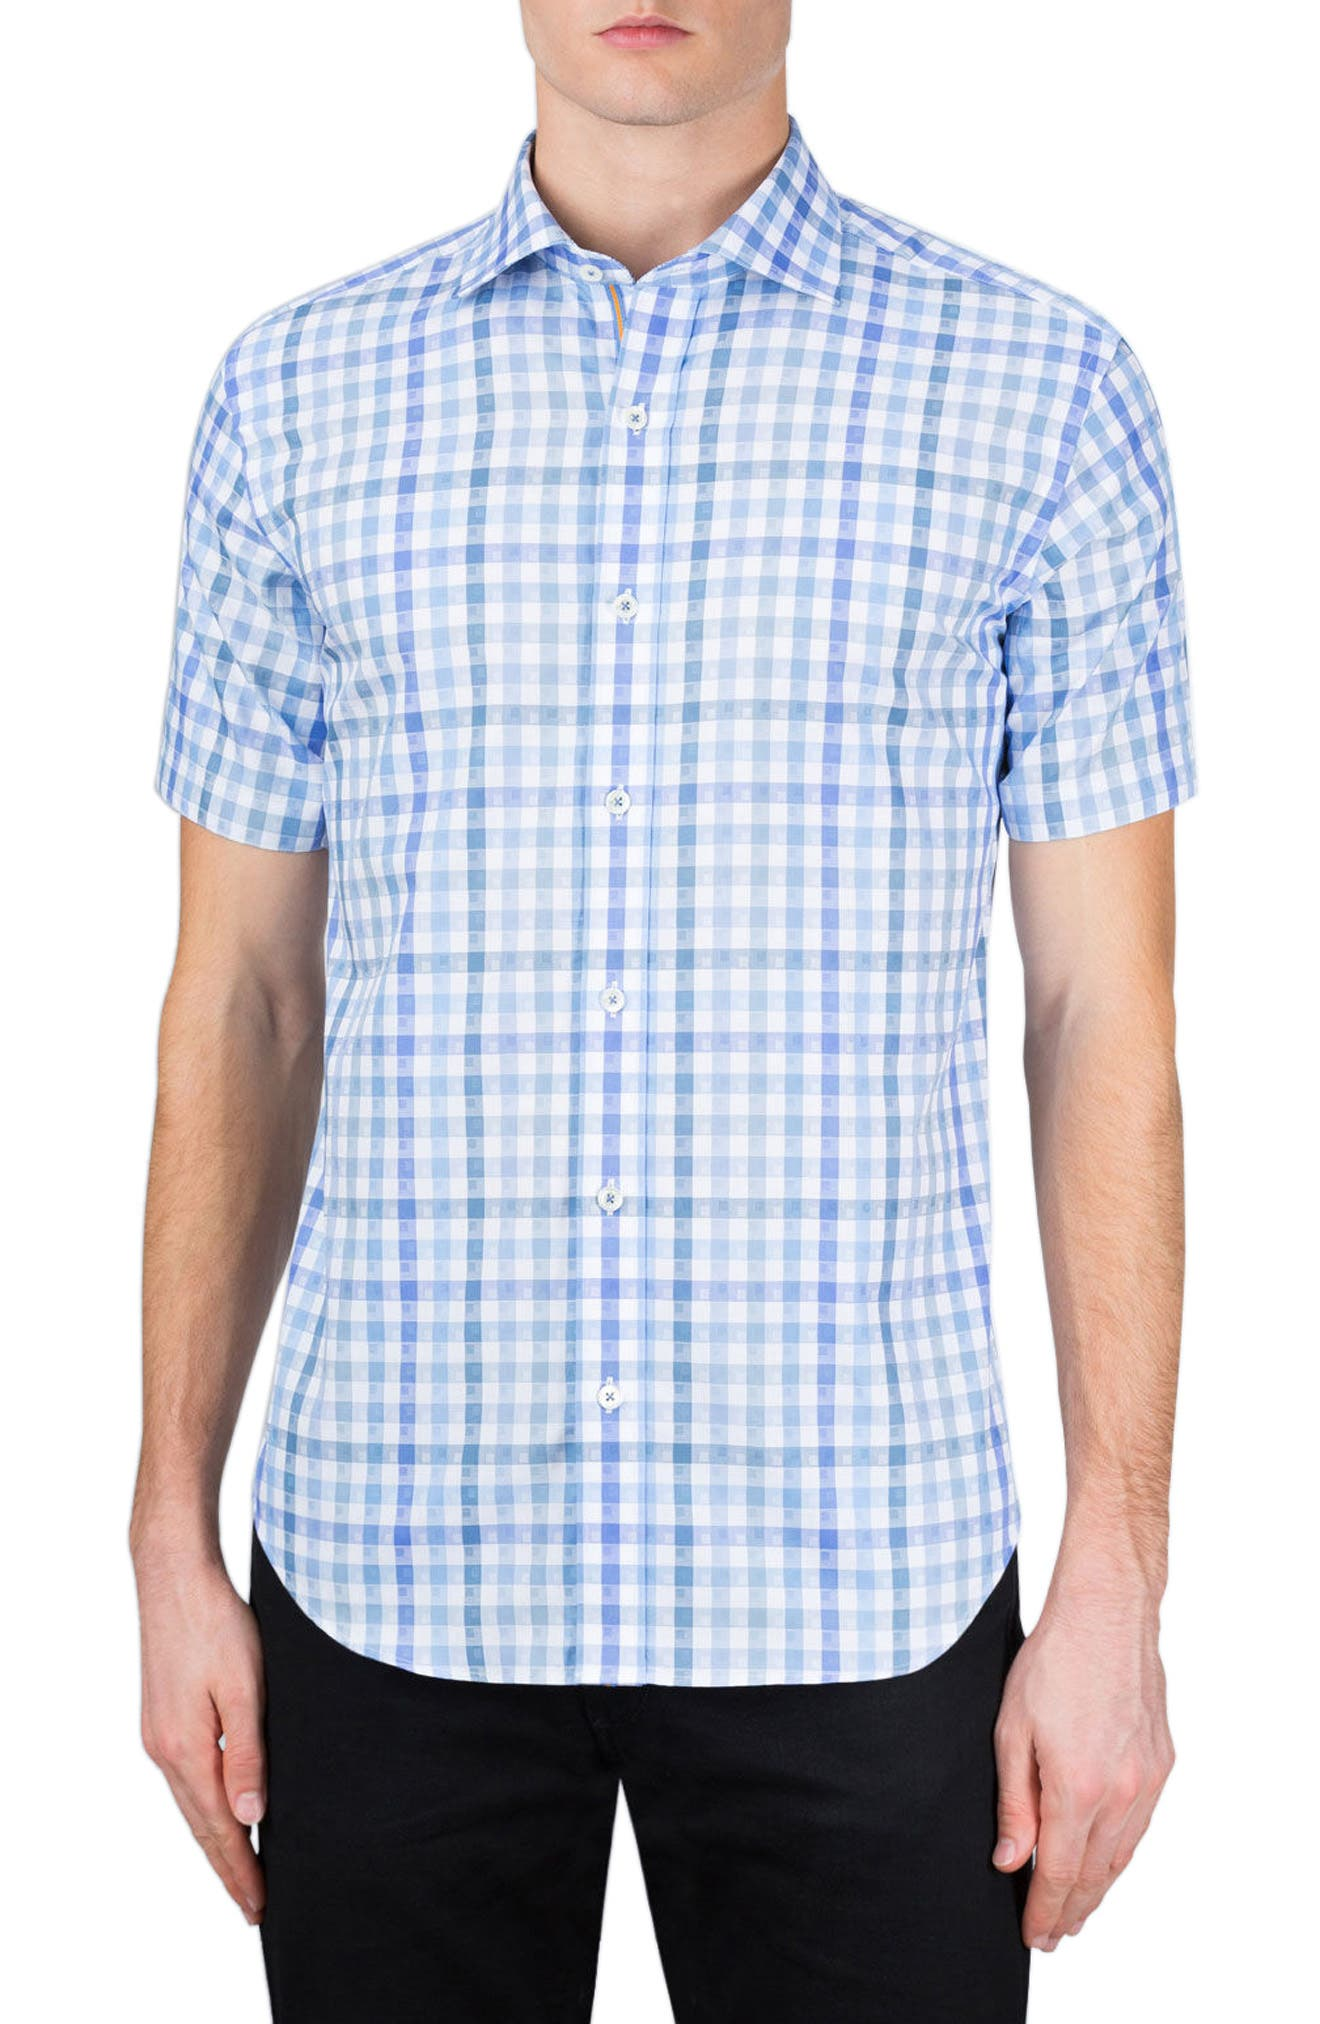 Alternate Image 1 Selected - Bugatchi Classic Fit Check Short Sleeve Sport Shirt